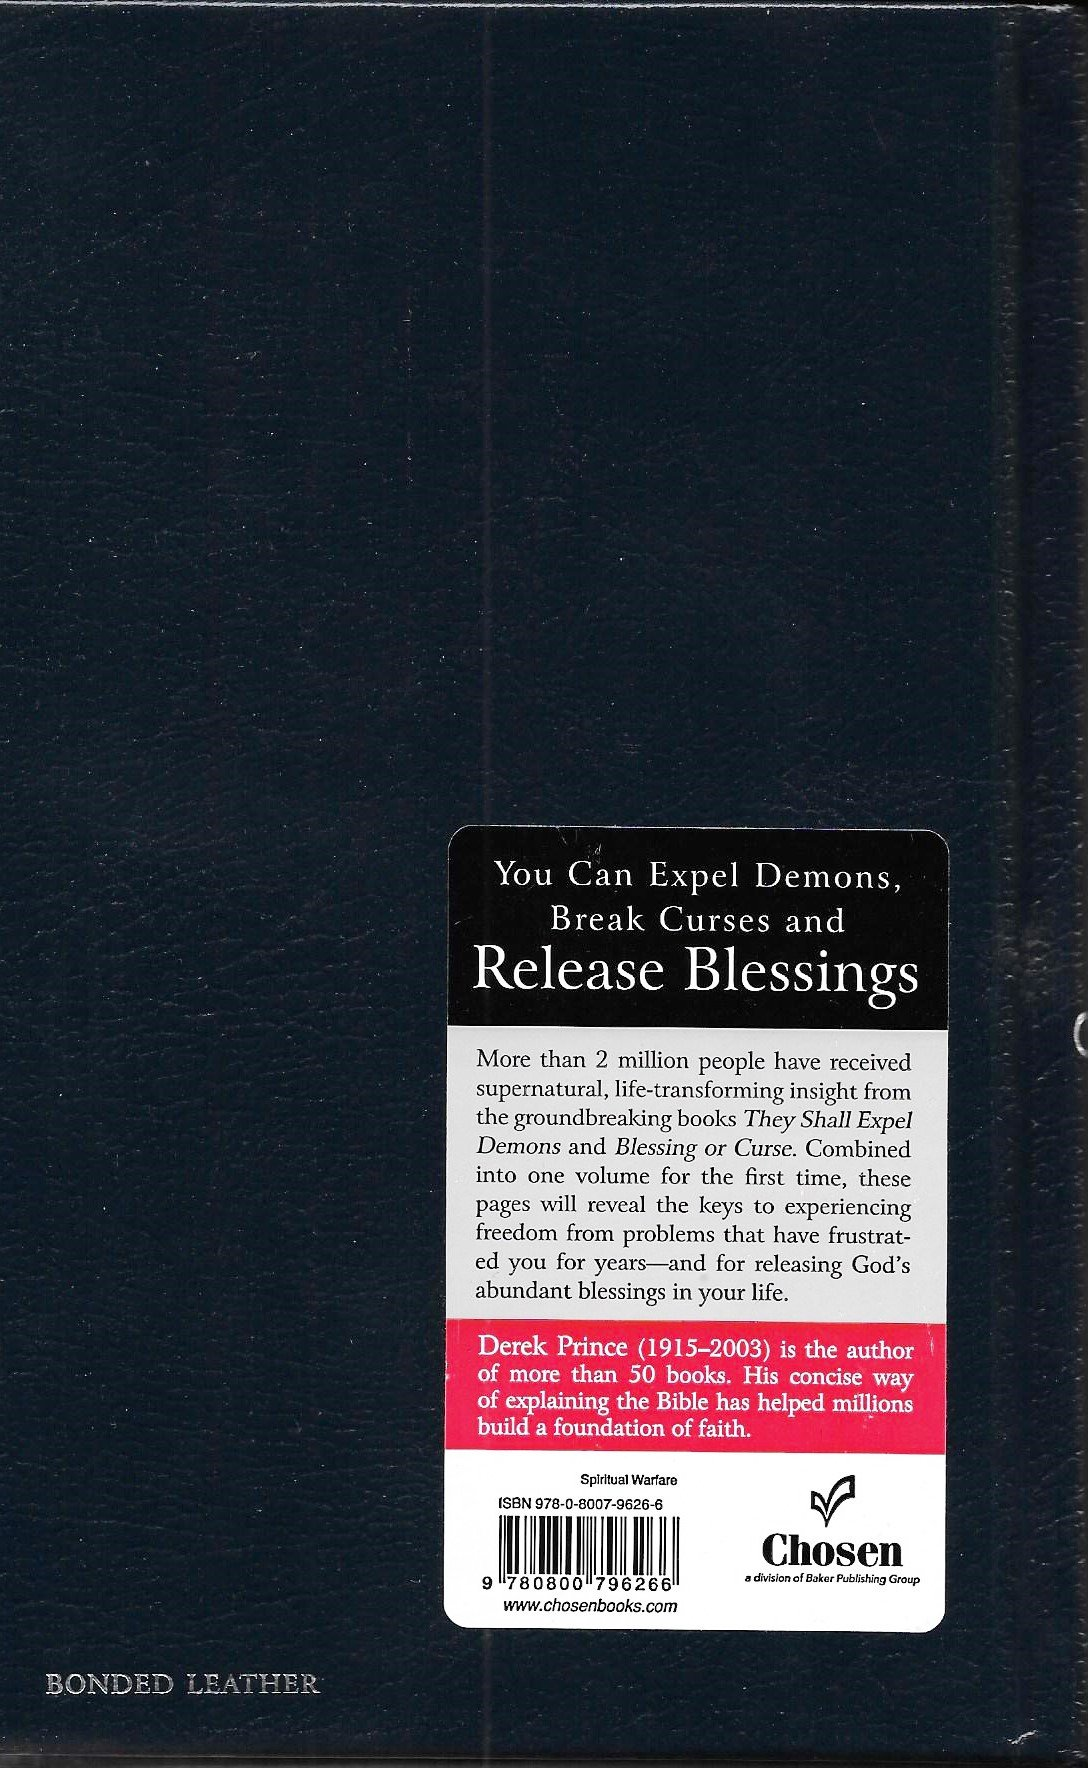 Blessings And Curses Derek Prince Free Pdf